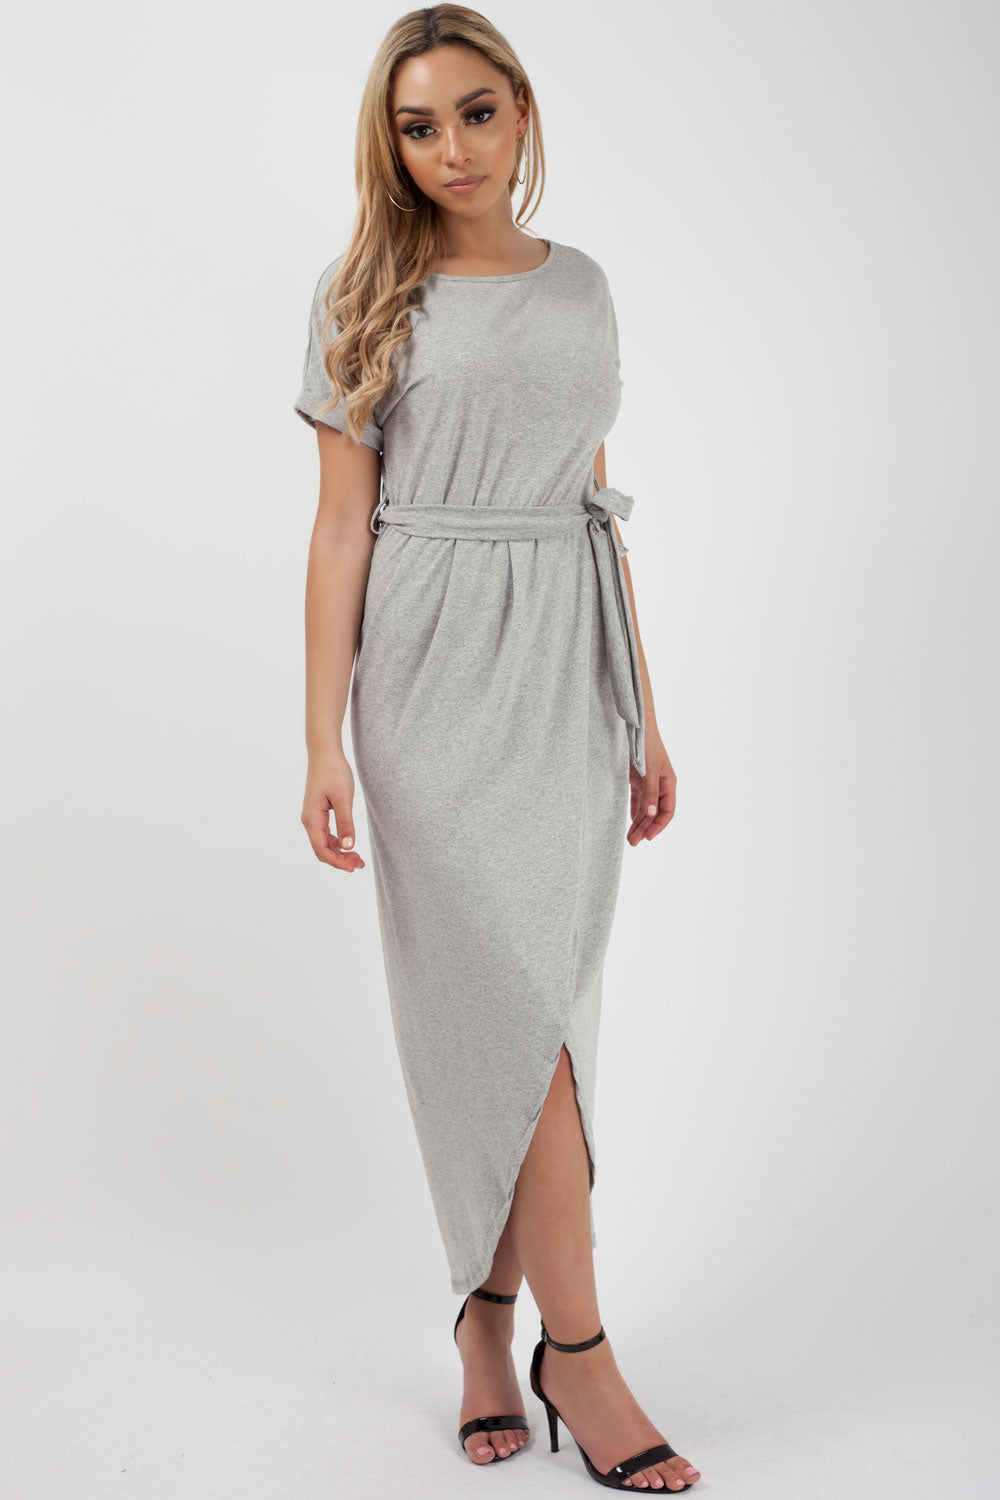 wrap maxi dress uk